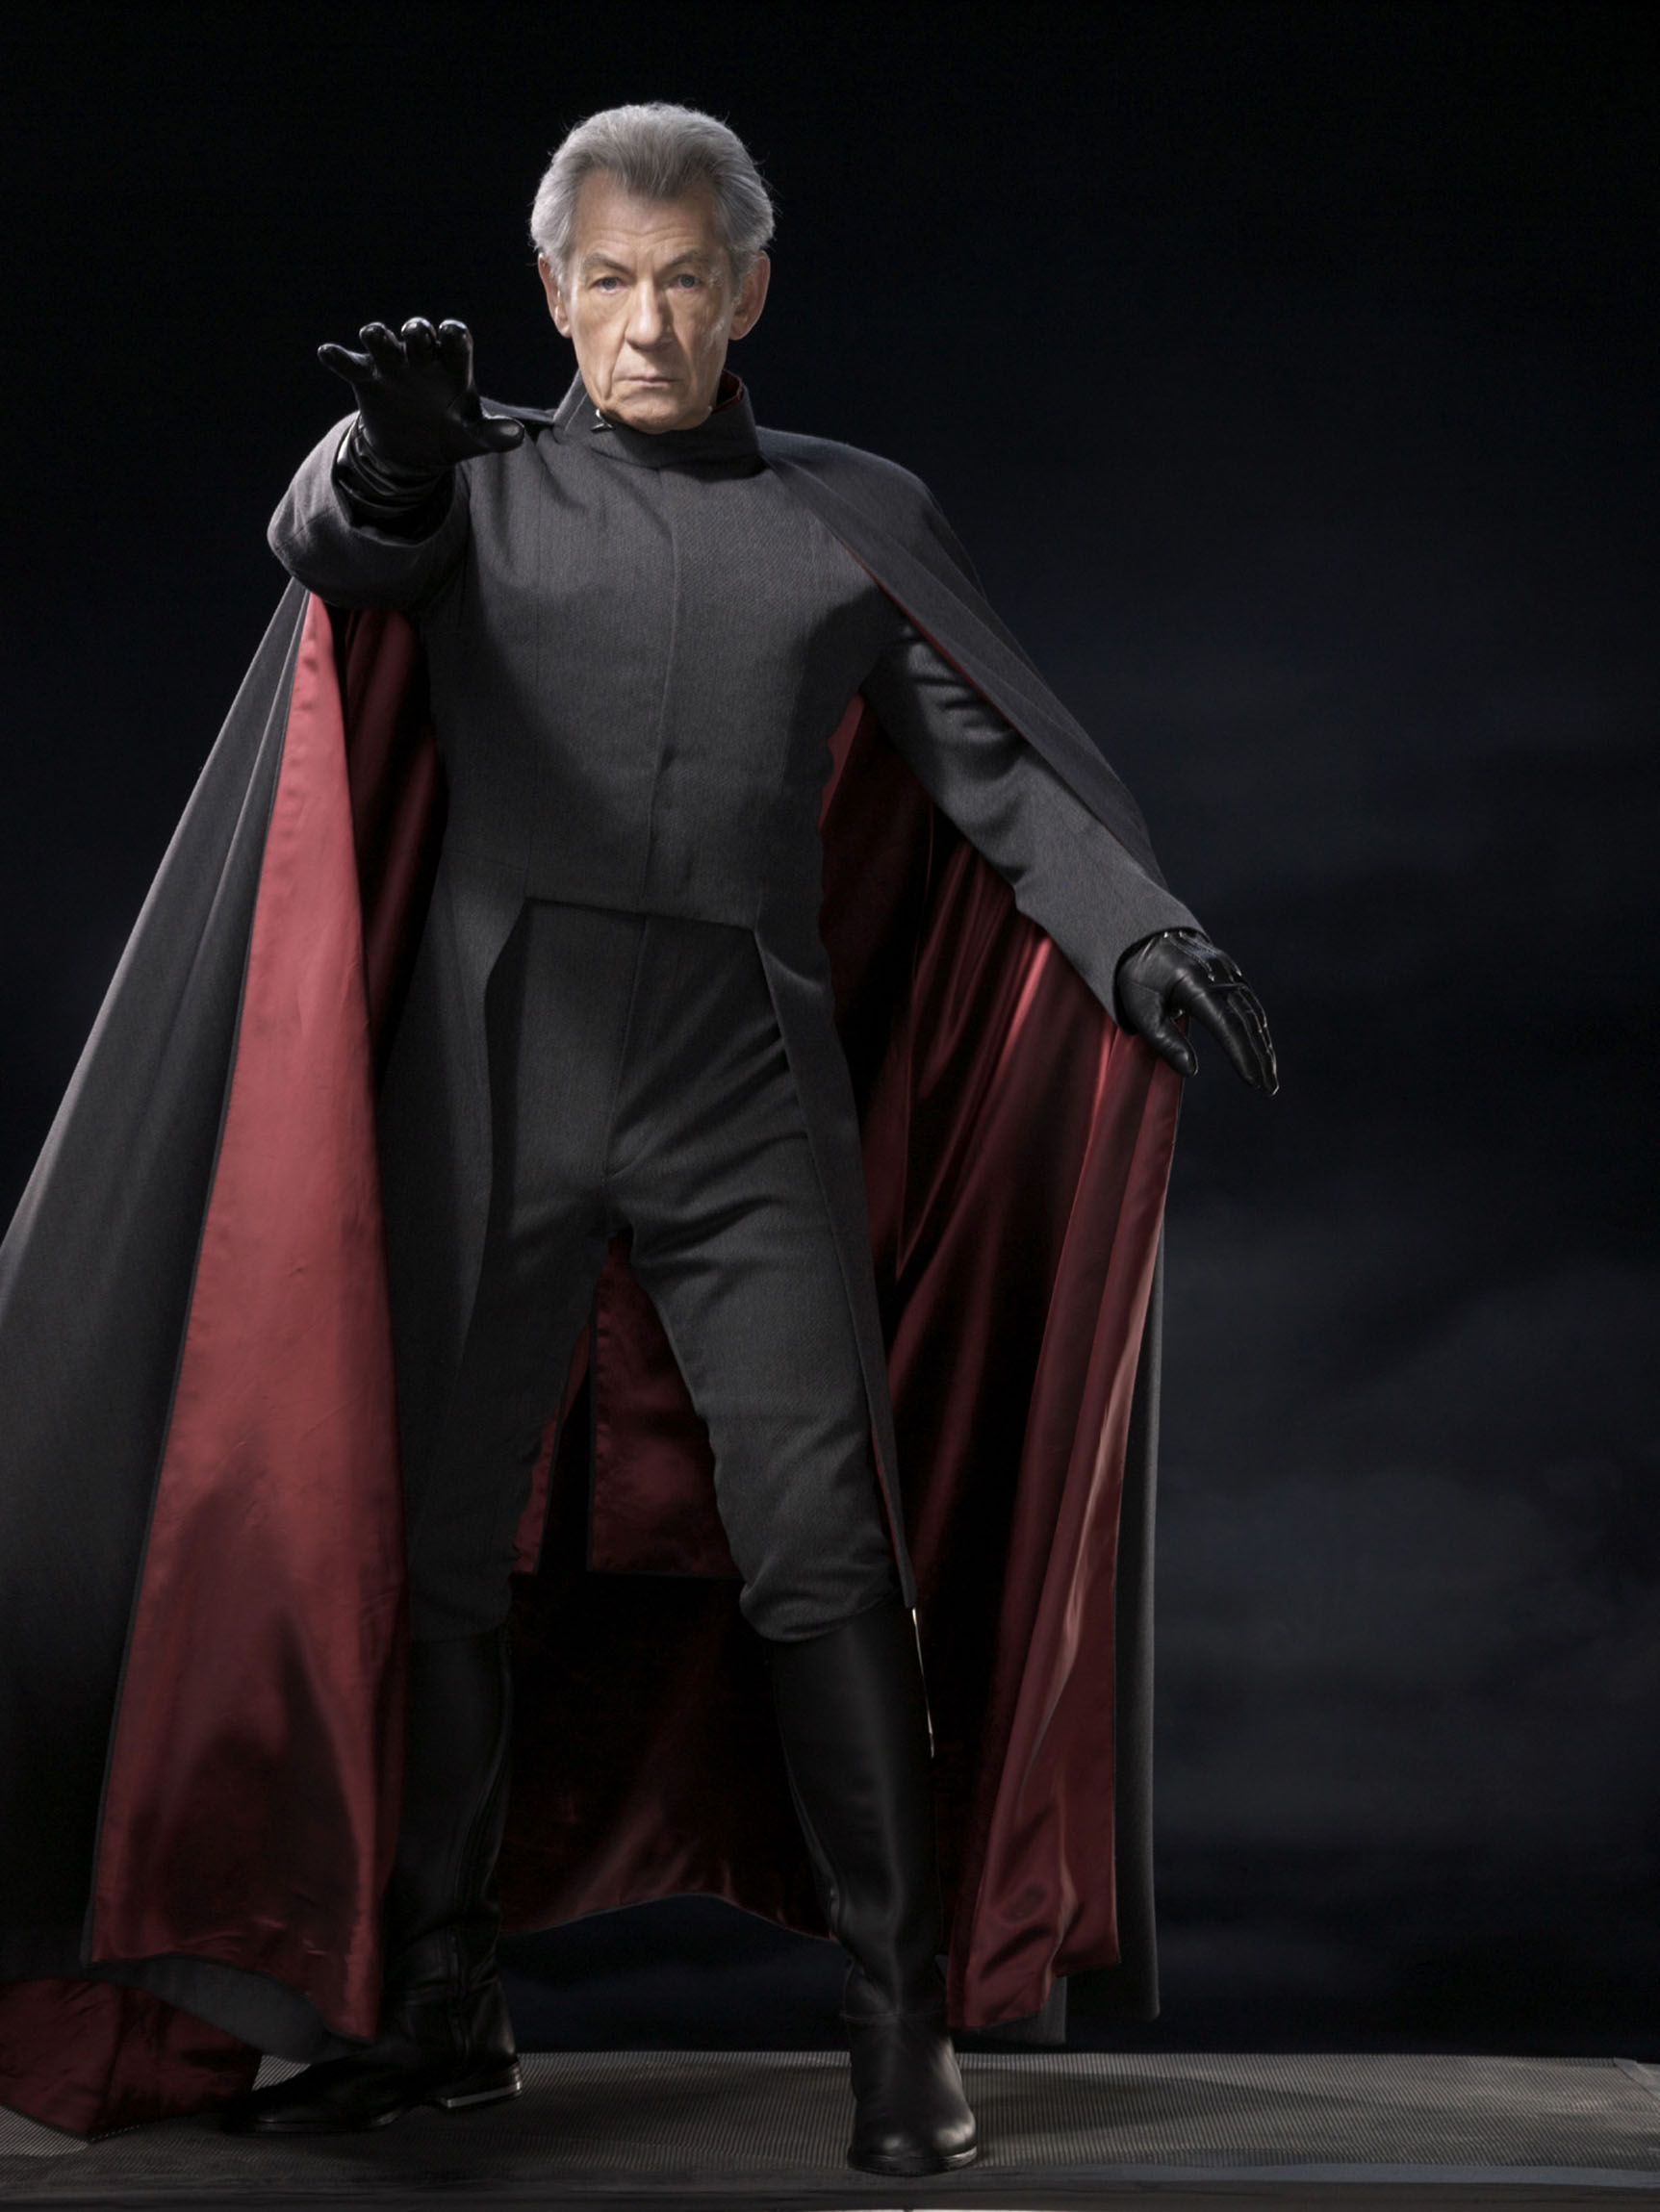 Magneto's Costume | X-Men Movies Wiki | FANDOM powered by ...